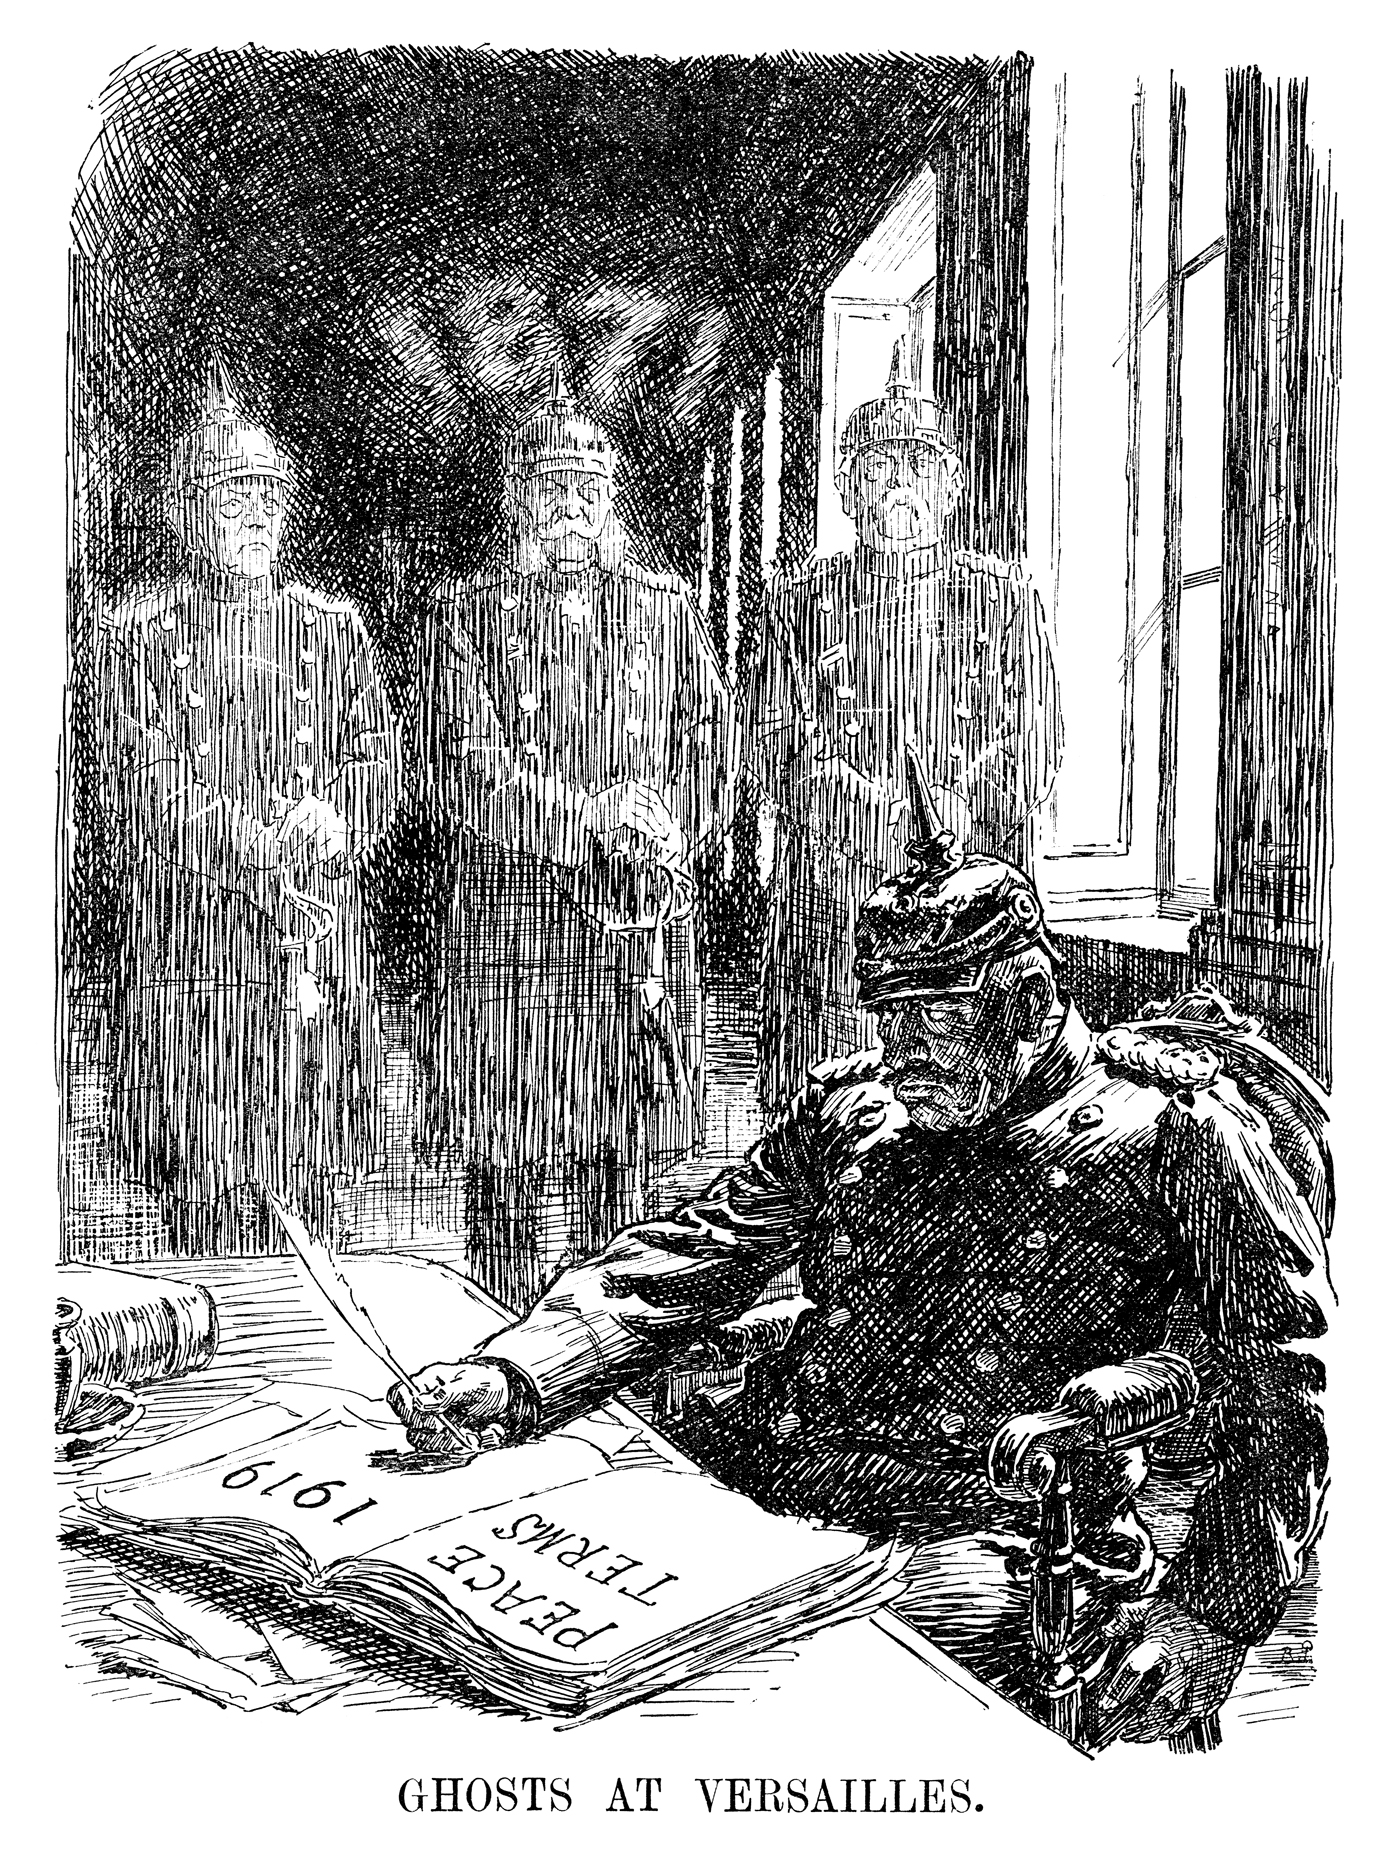 Ghosts at Versailles. Published in Punch 7 May 1919. Kaiser Wilhelm II ponders the very different negotiations at Versailles in 1871 when Germany was the triumphant victor of the Franco-Prussian War. The shades of Otto von Bismarck and his grandfather Wilhelm I appear before the recalcitrant Kaiser. By Bernard Partridge © Punch Ltd